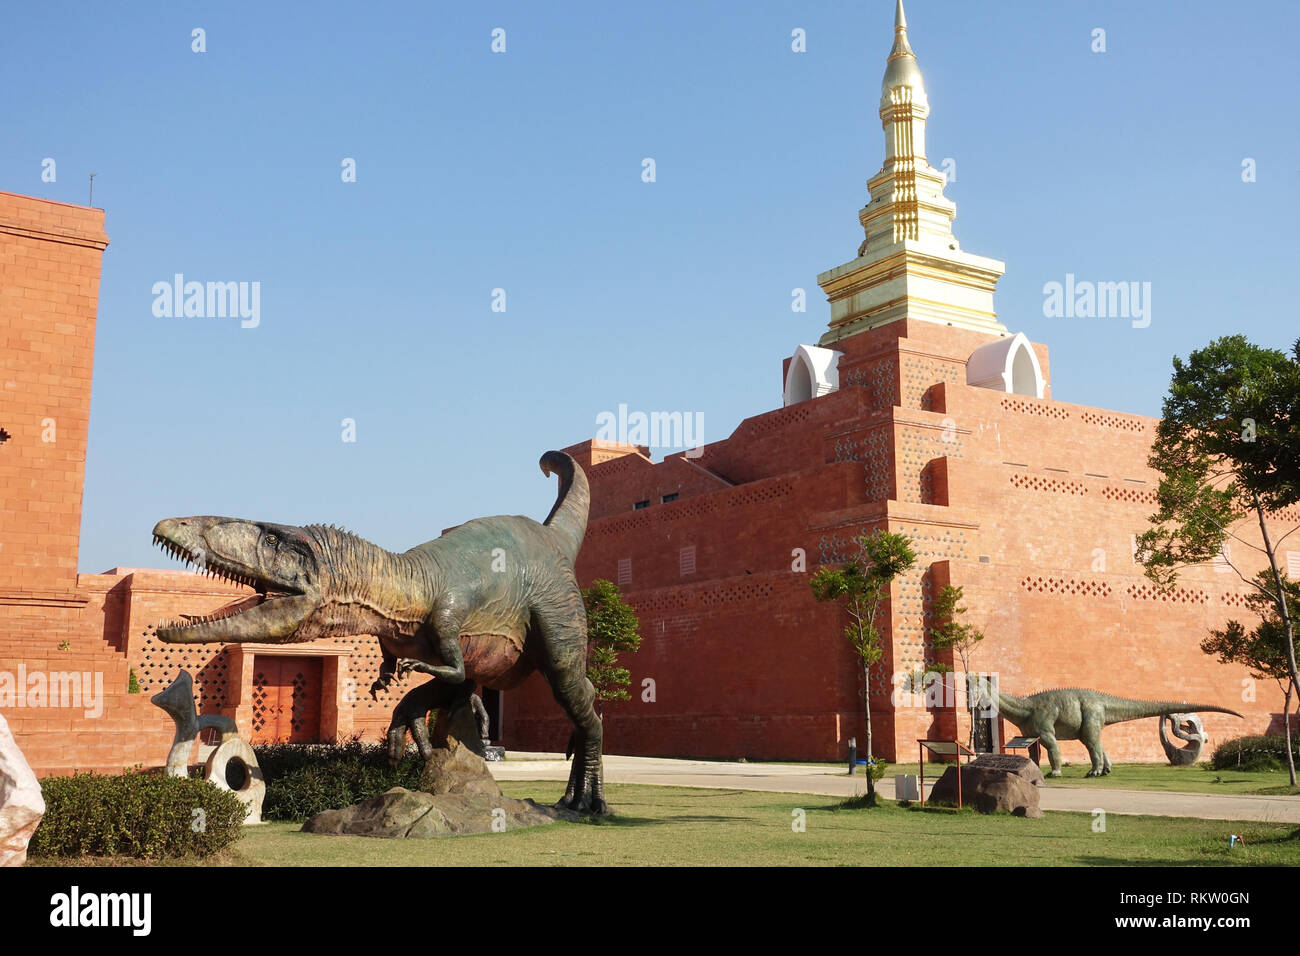 Dinosaur models outside the Bhodhidart relics pagoda Sukhothai airport Thailand - Stock Image